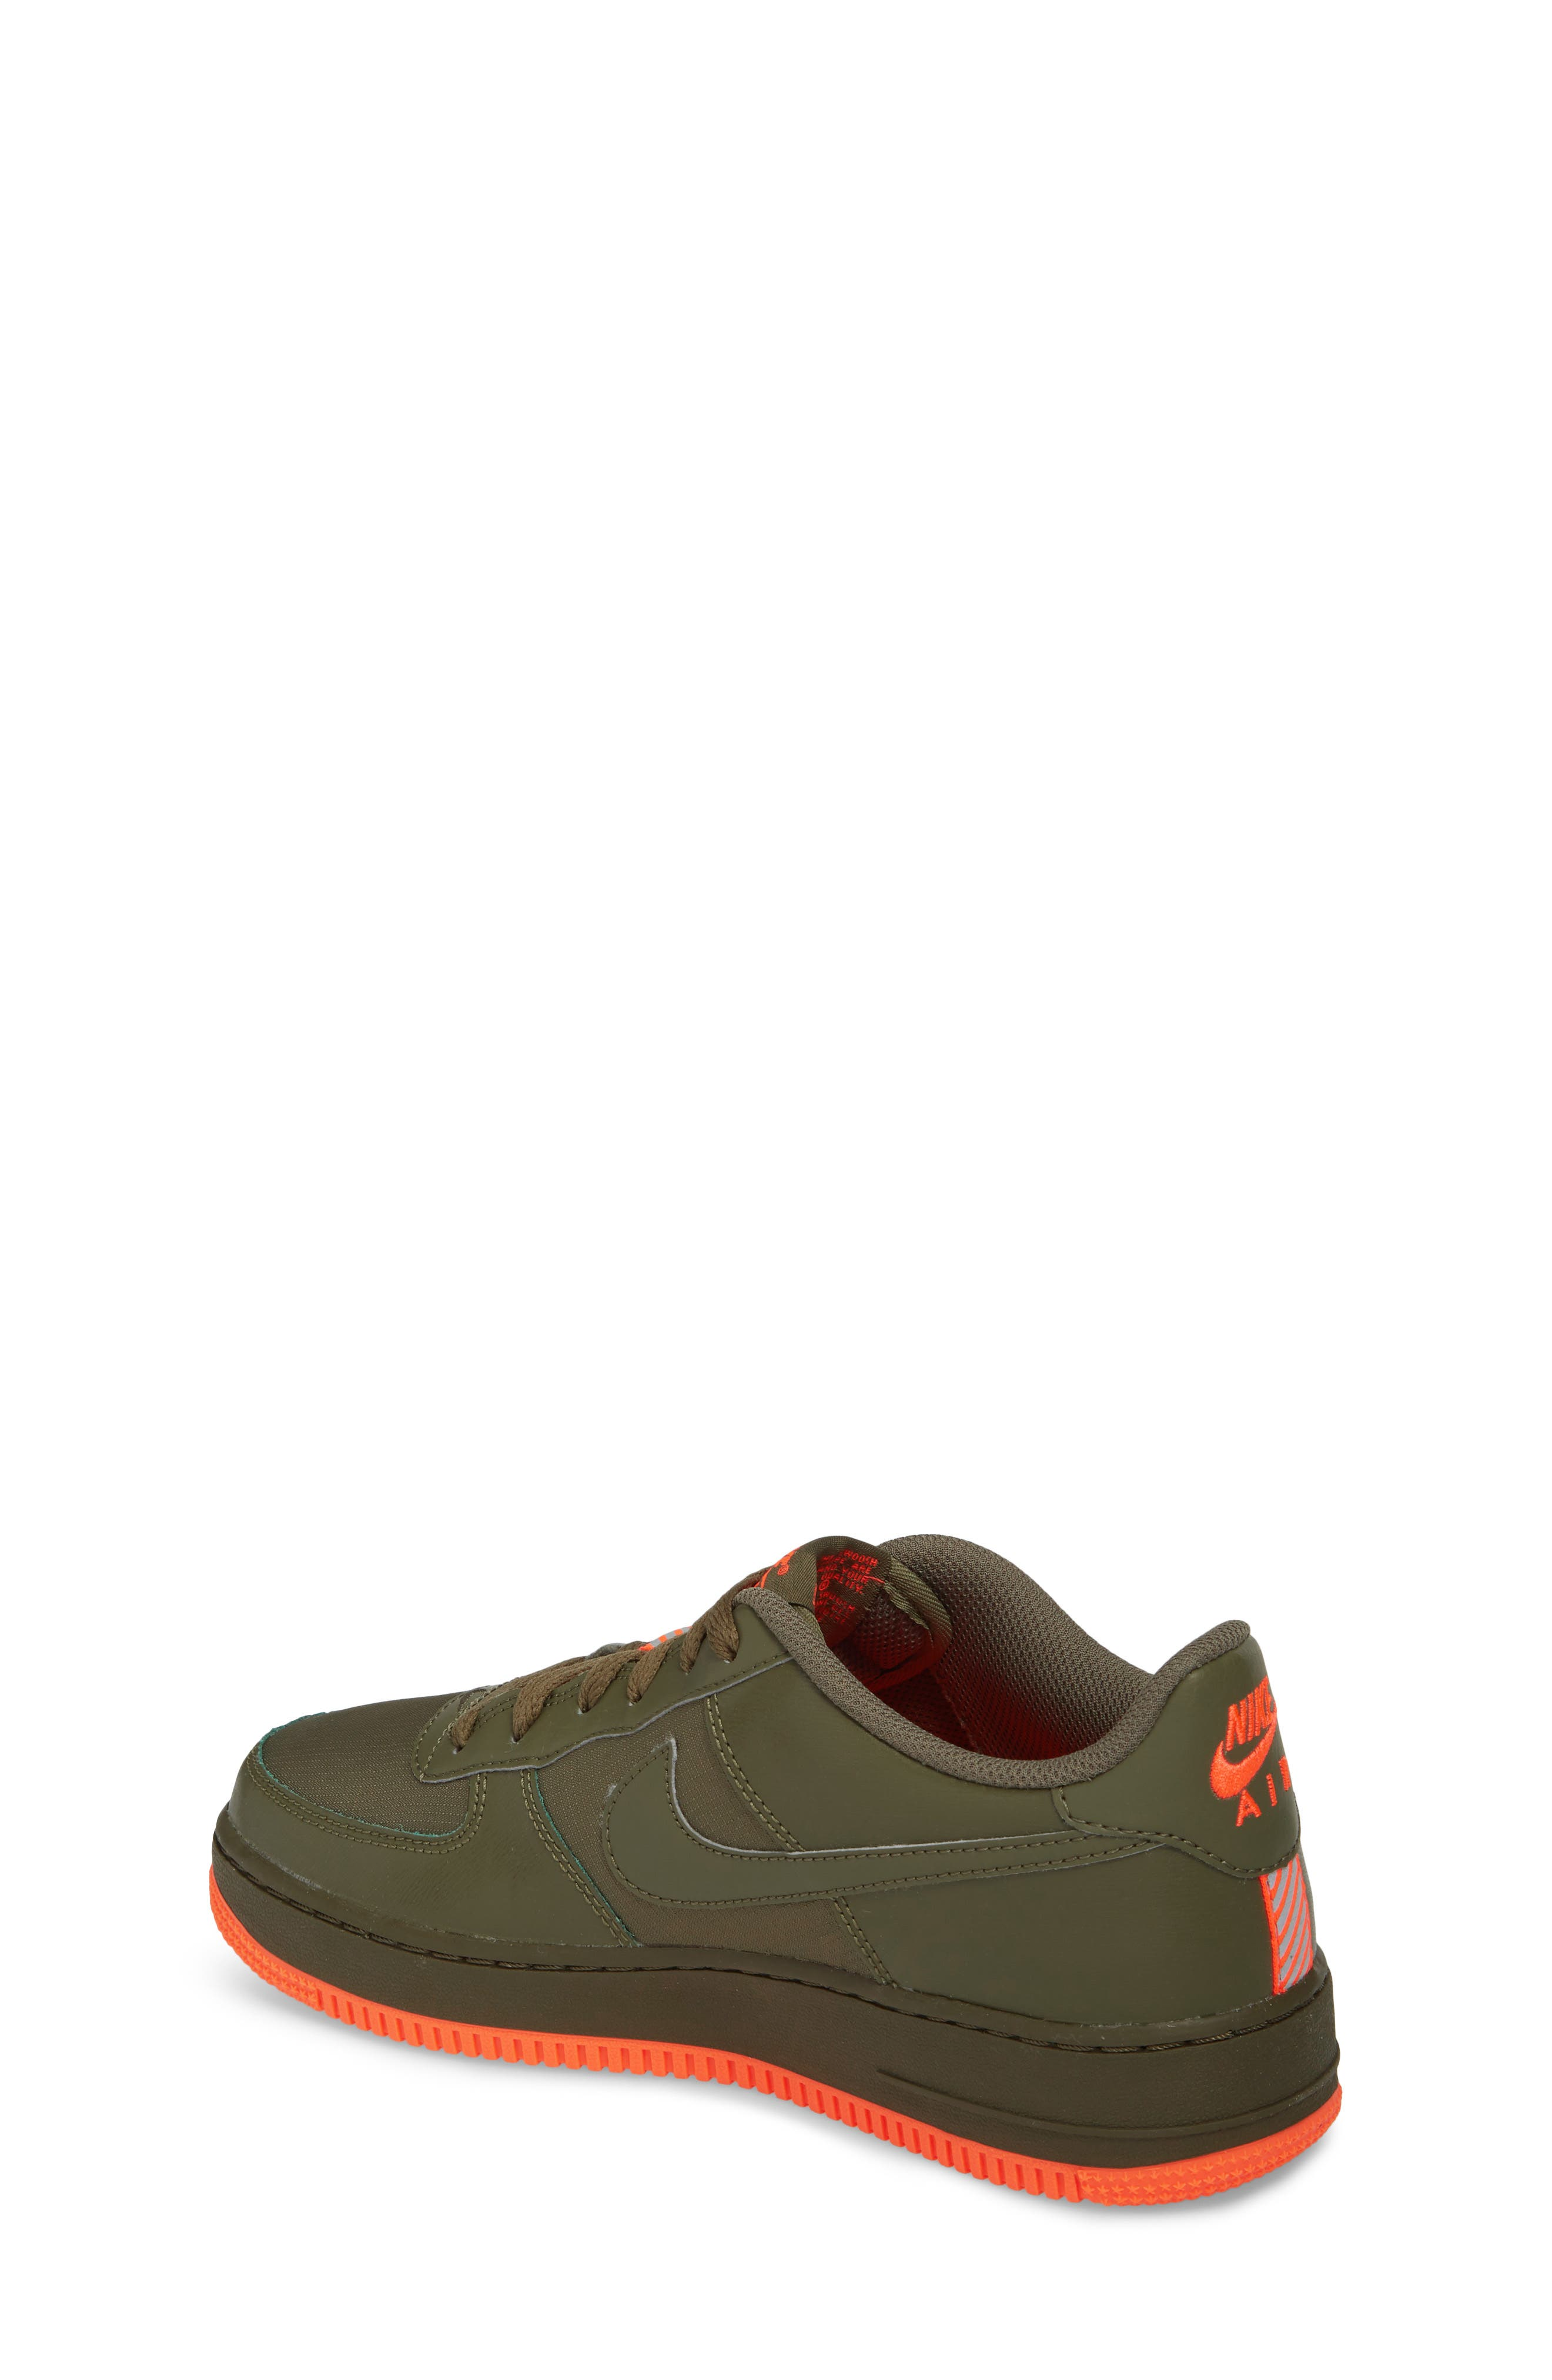 Air Force 1 LV8 Sneaker,                             Alternate thumbnail 2, color,                             MEDIUM OLIVE/ TOTAL CRIMSON